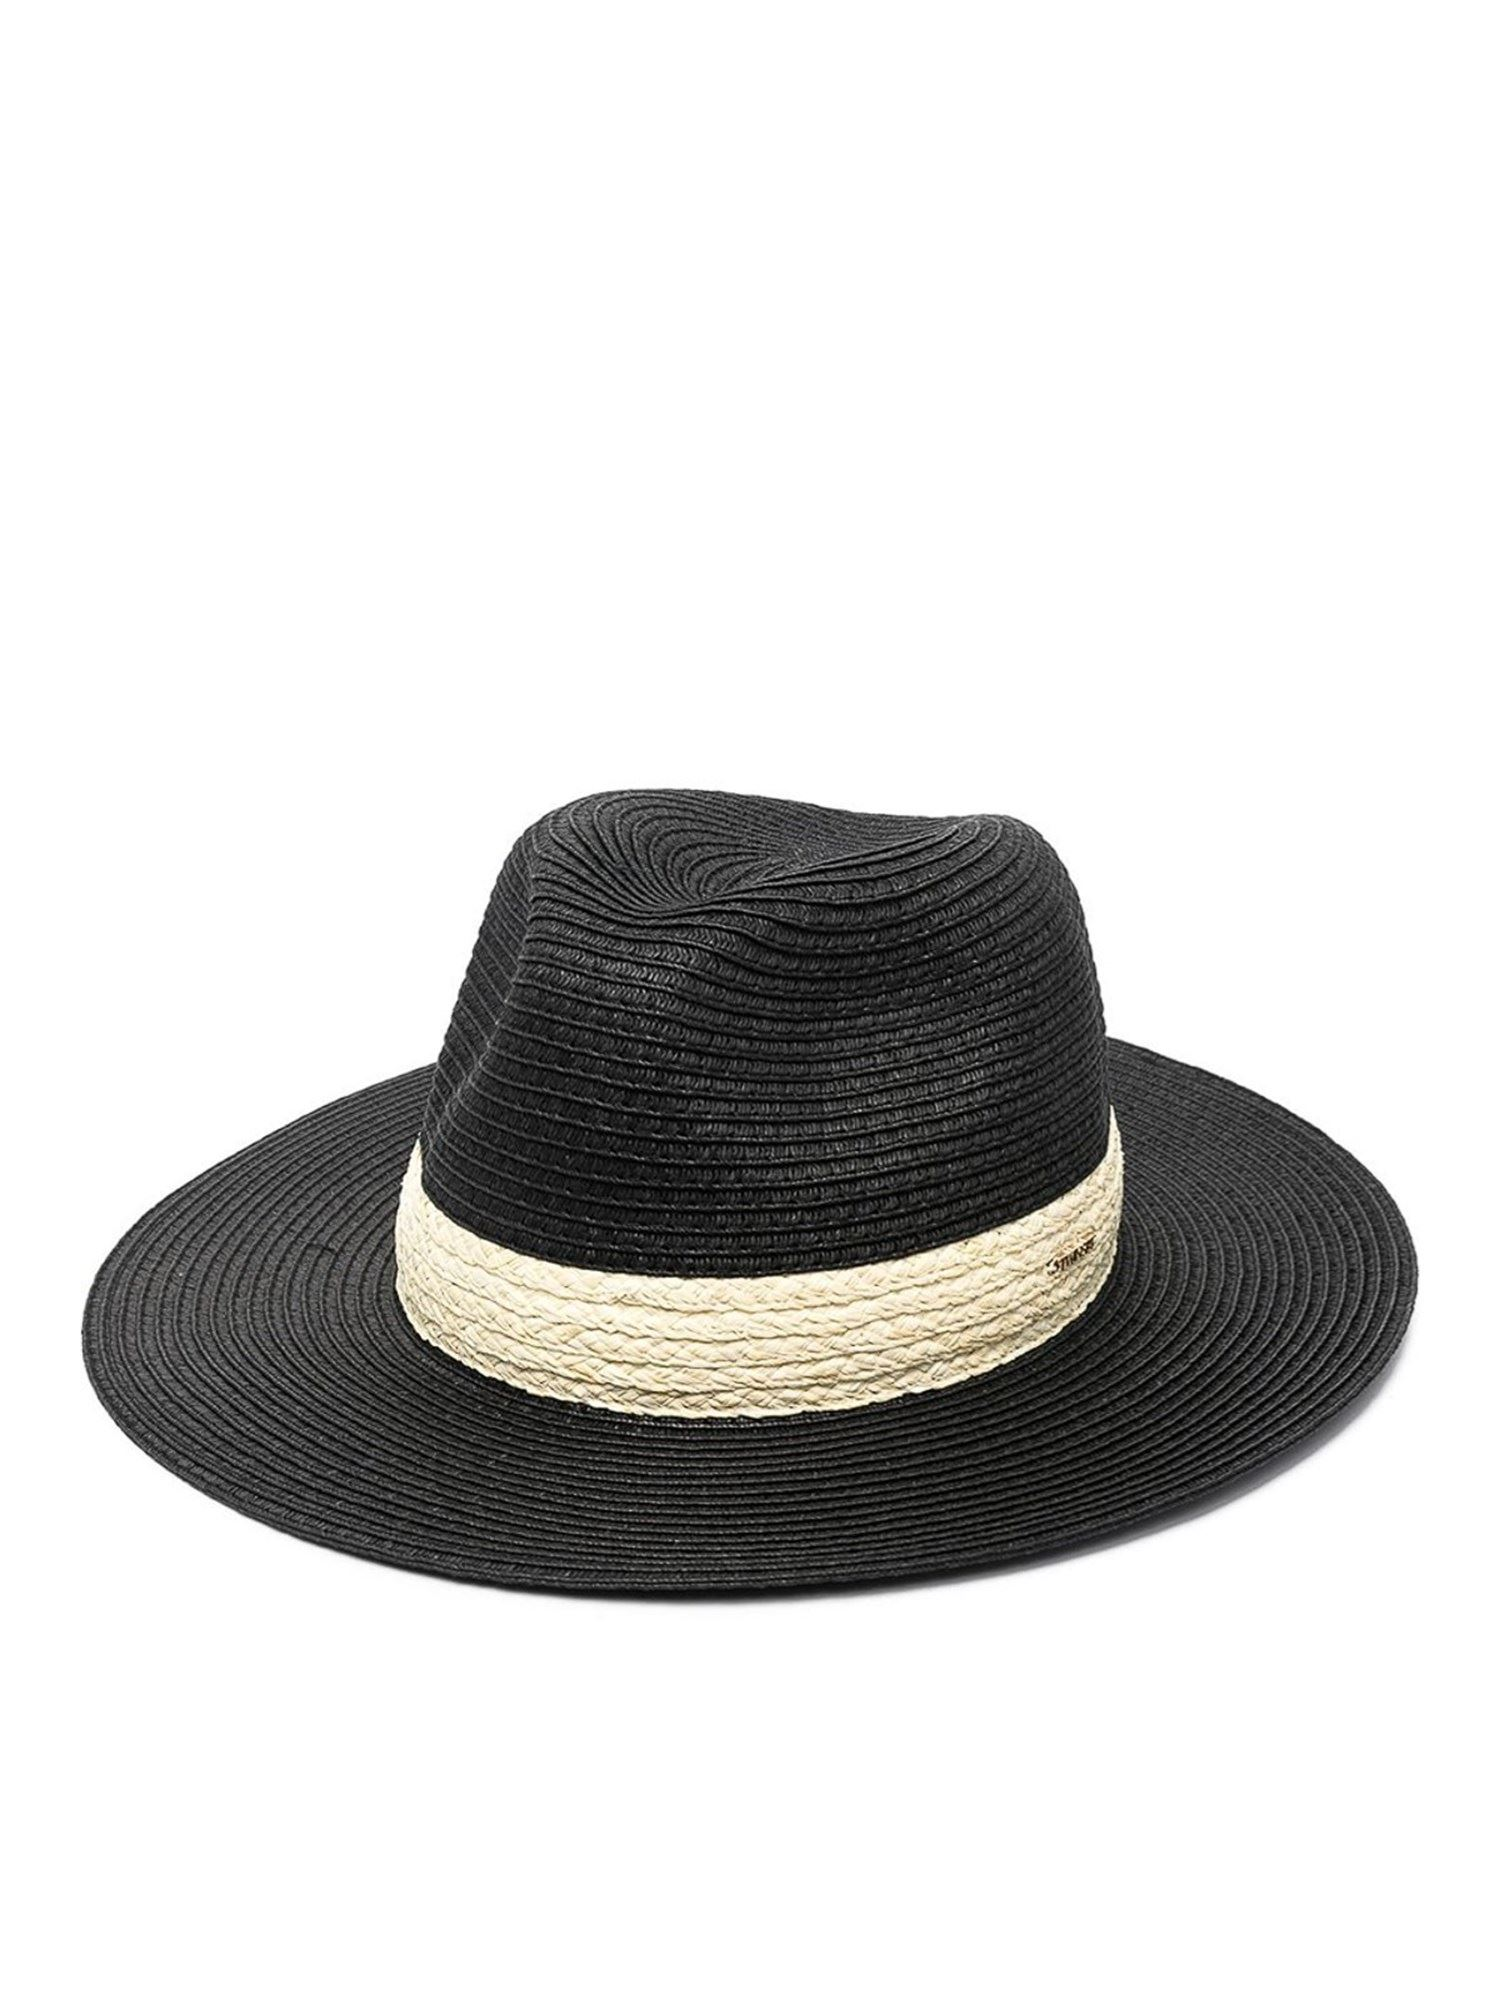 Twinset STRAW HAT IN BLACK